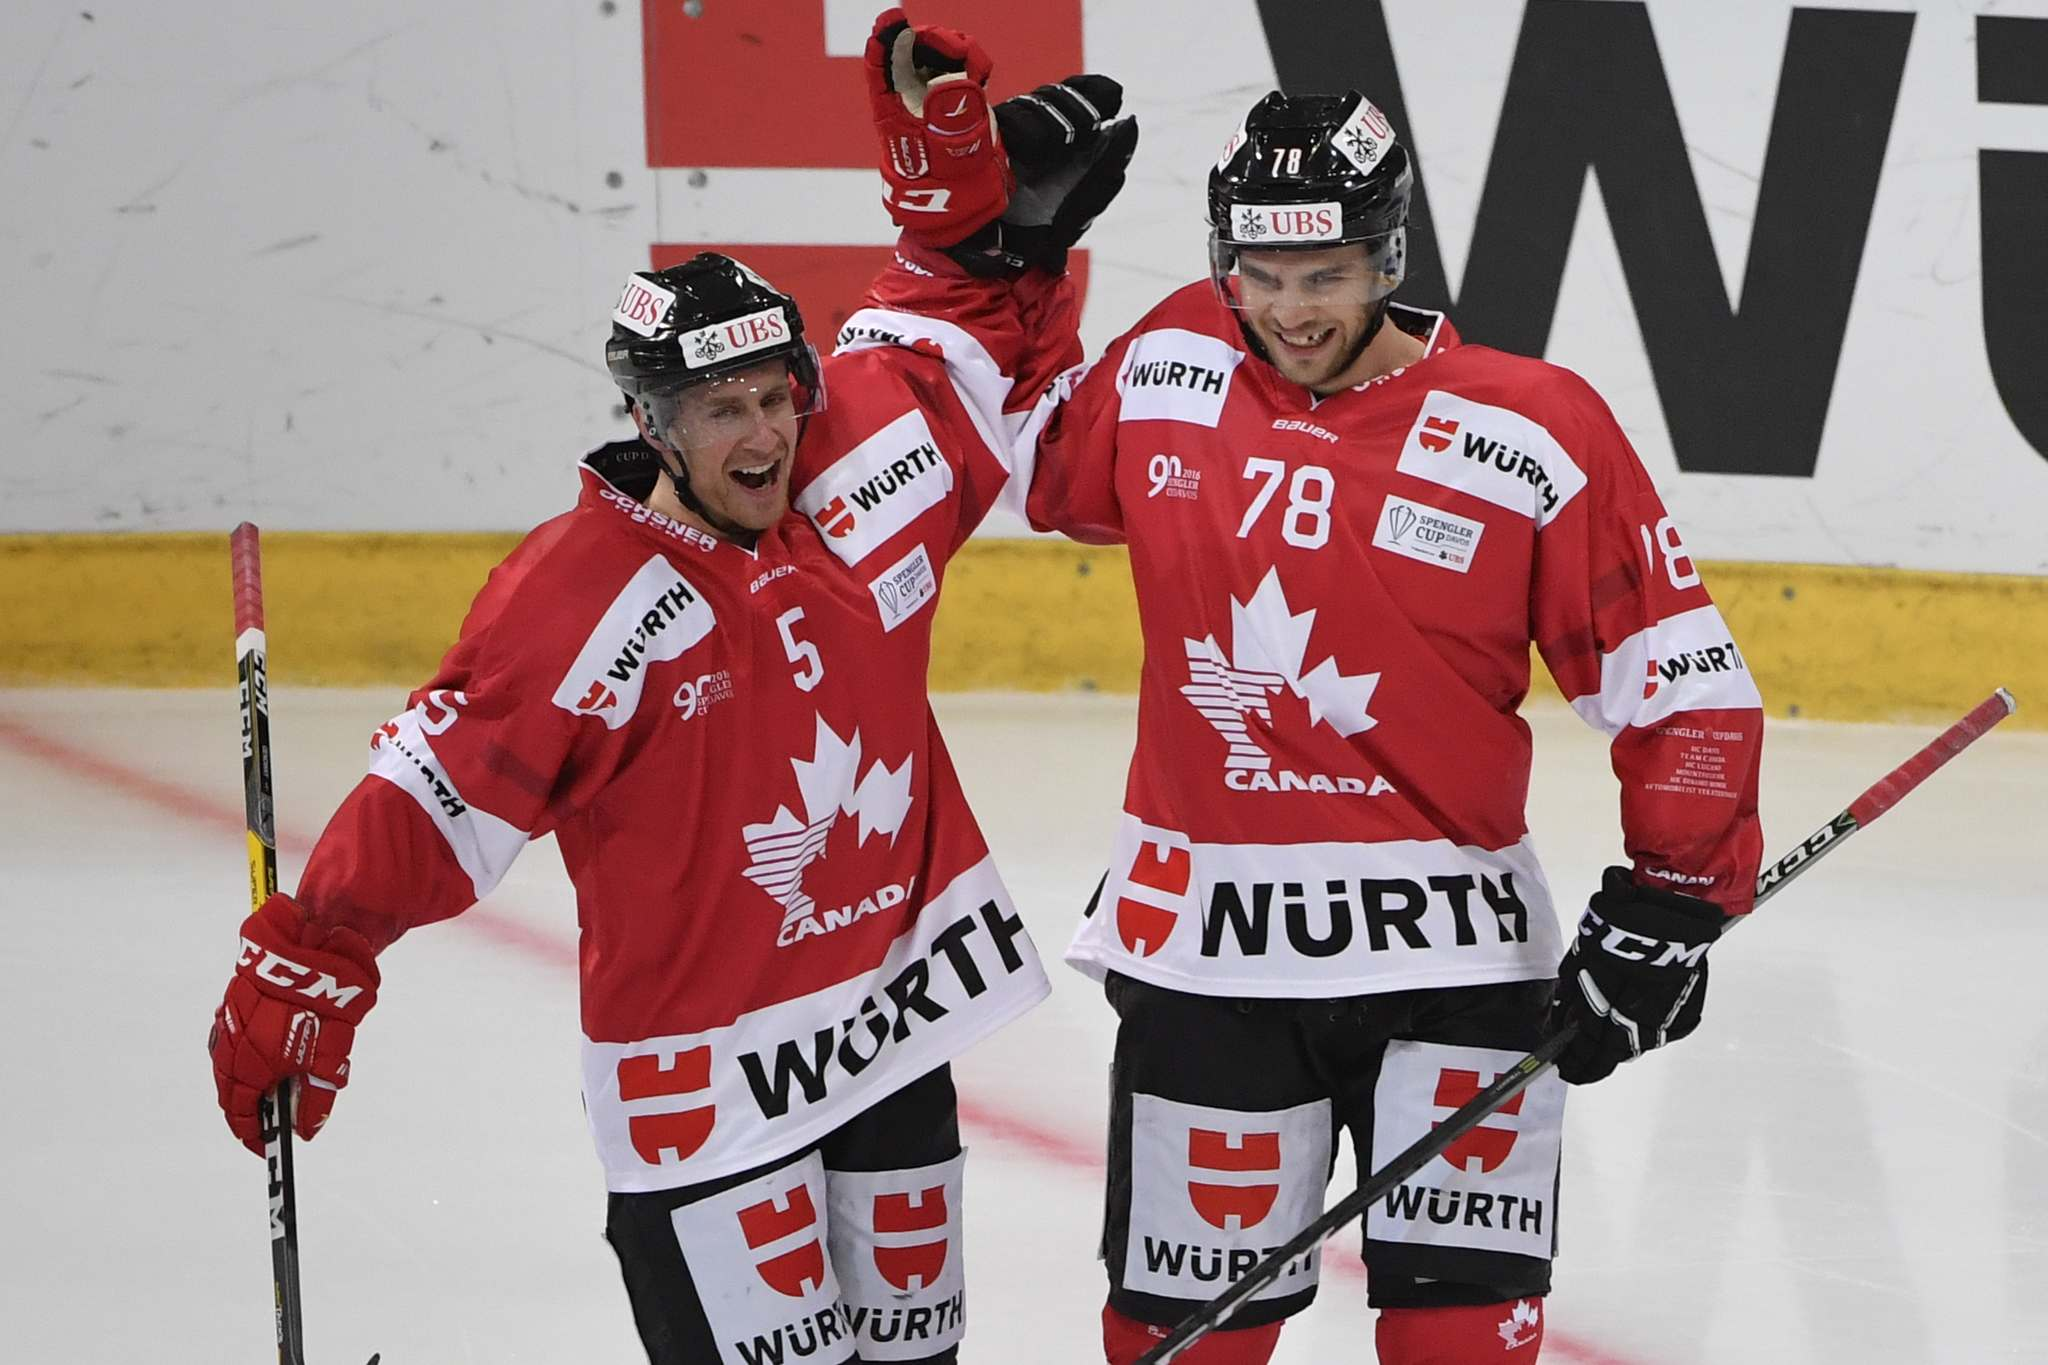 Canada's Olympic men's hockey team unveiled